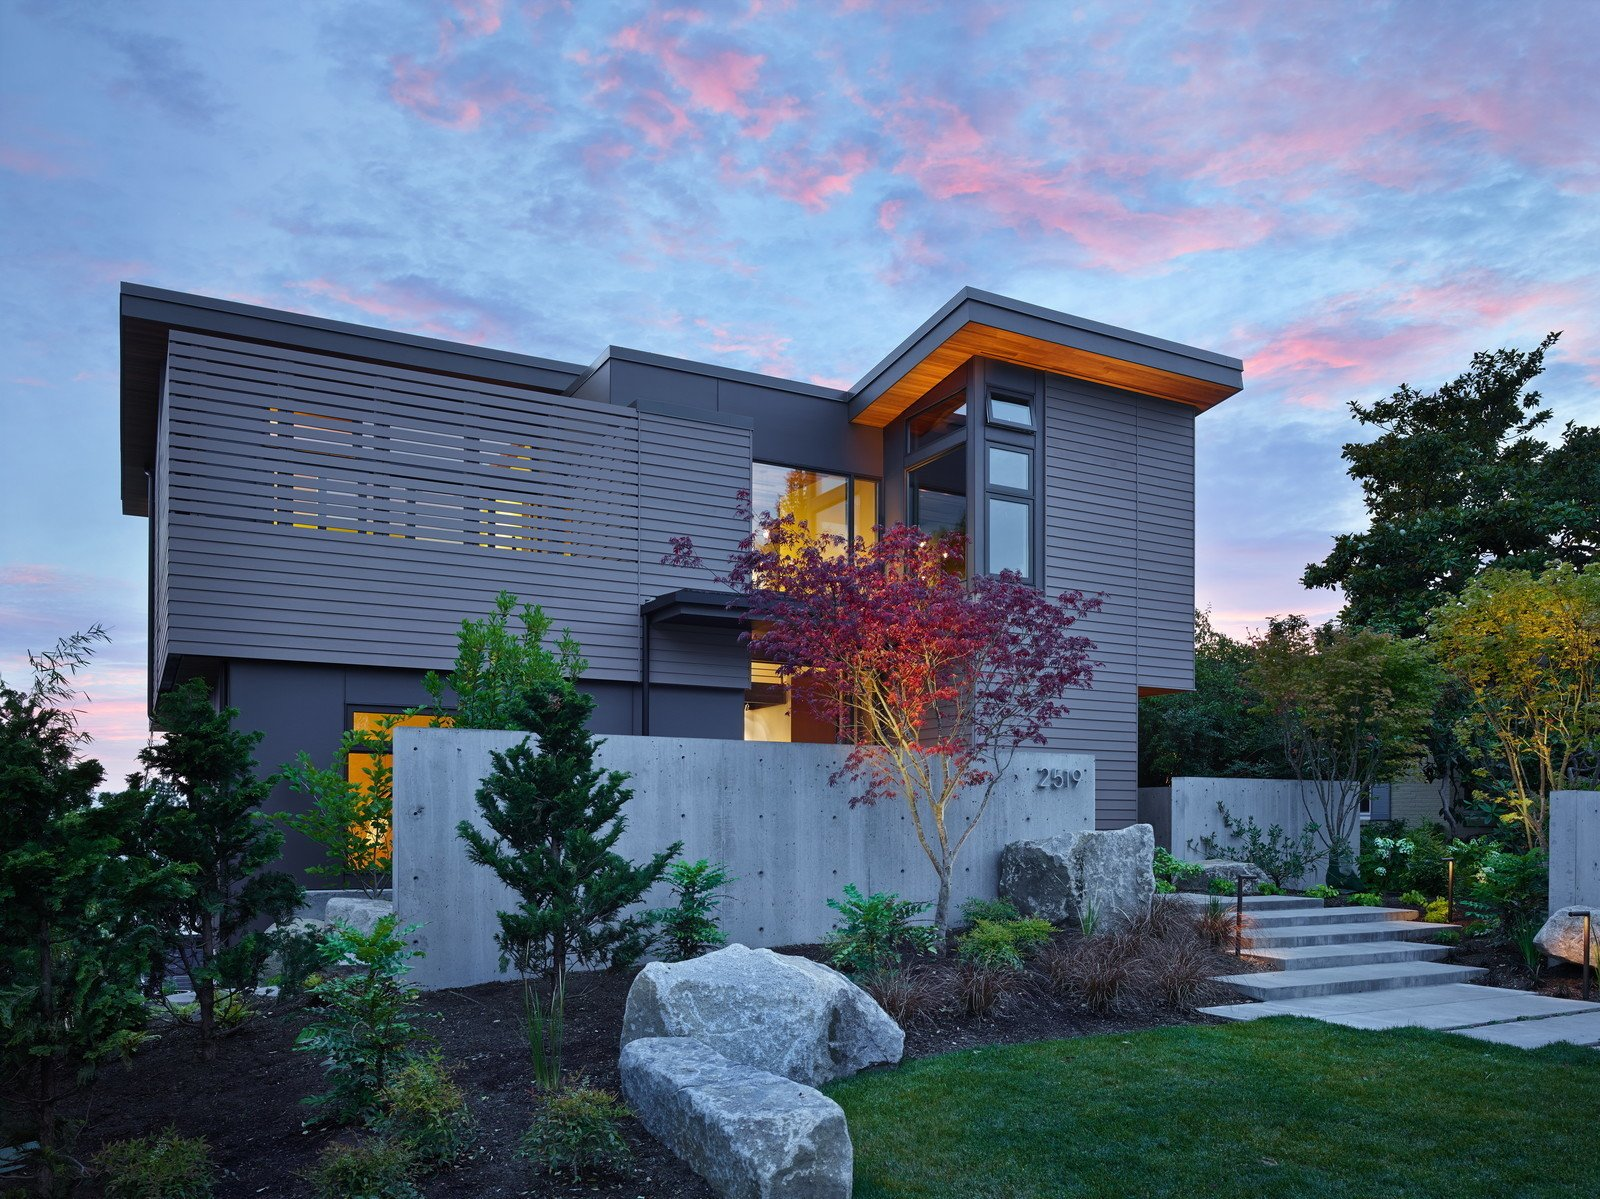 """This cozy urban retreat was designed to take advantage of Sound and Olympic Mountain views and highlight the owners' collection of NW art. A central steel + glass stair creates a """"vertical gallery"""" filled with art and awash with natural light. On the top floor, living, dining and cooking spaces share two decks. One is secluded and captures morning light. The other opens up to sunsets and sweeping views.  Photo 6 of 12 in 11 of Our Favorite Pacific Northwest Homes From the Community"""